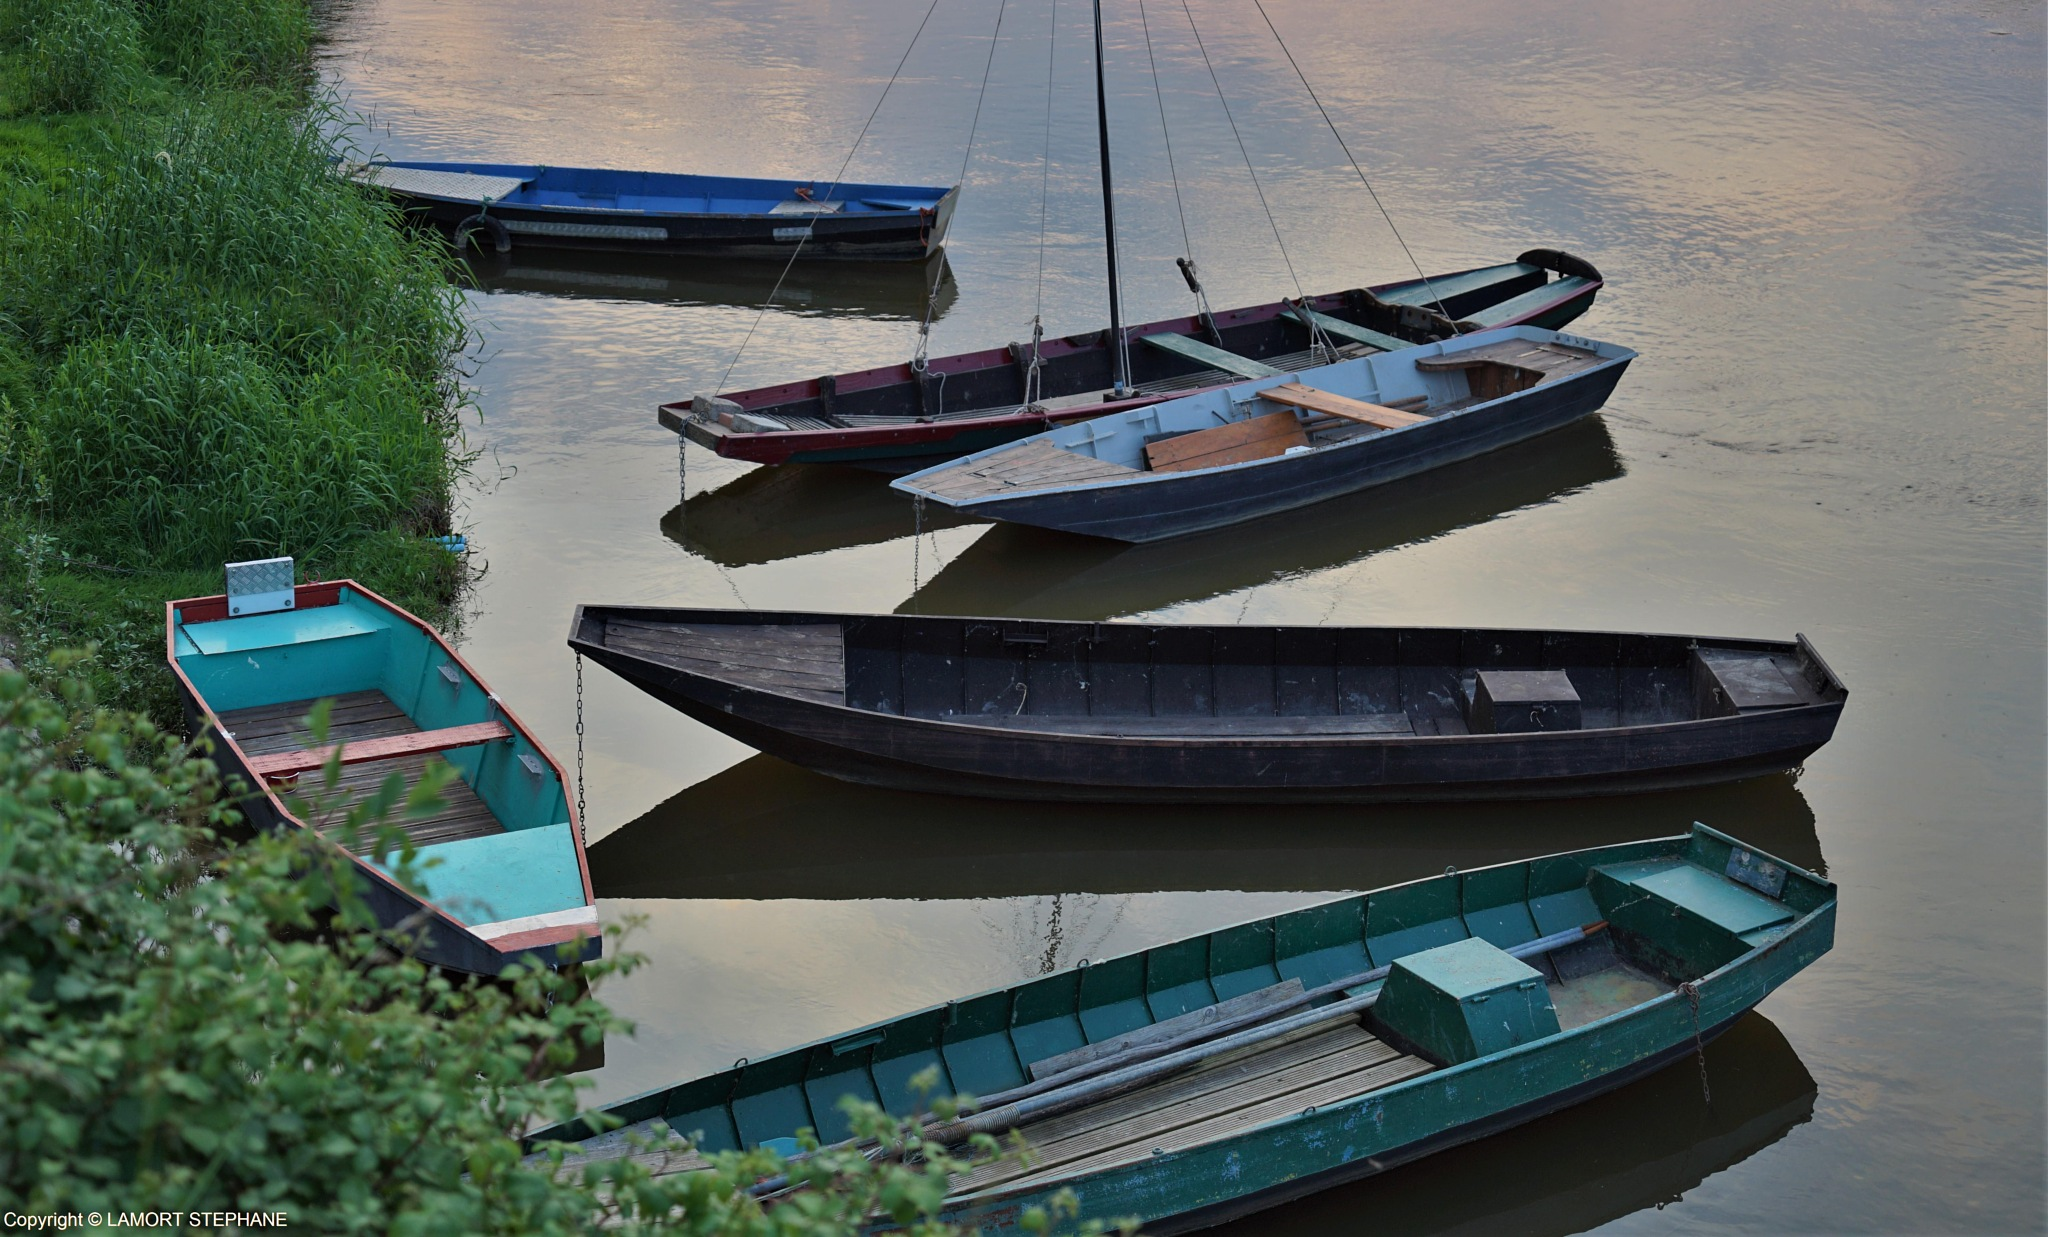 barques sur la Loire by lamort stephane